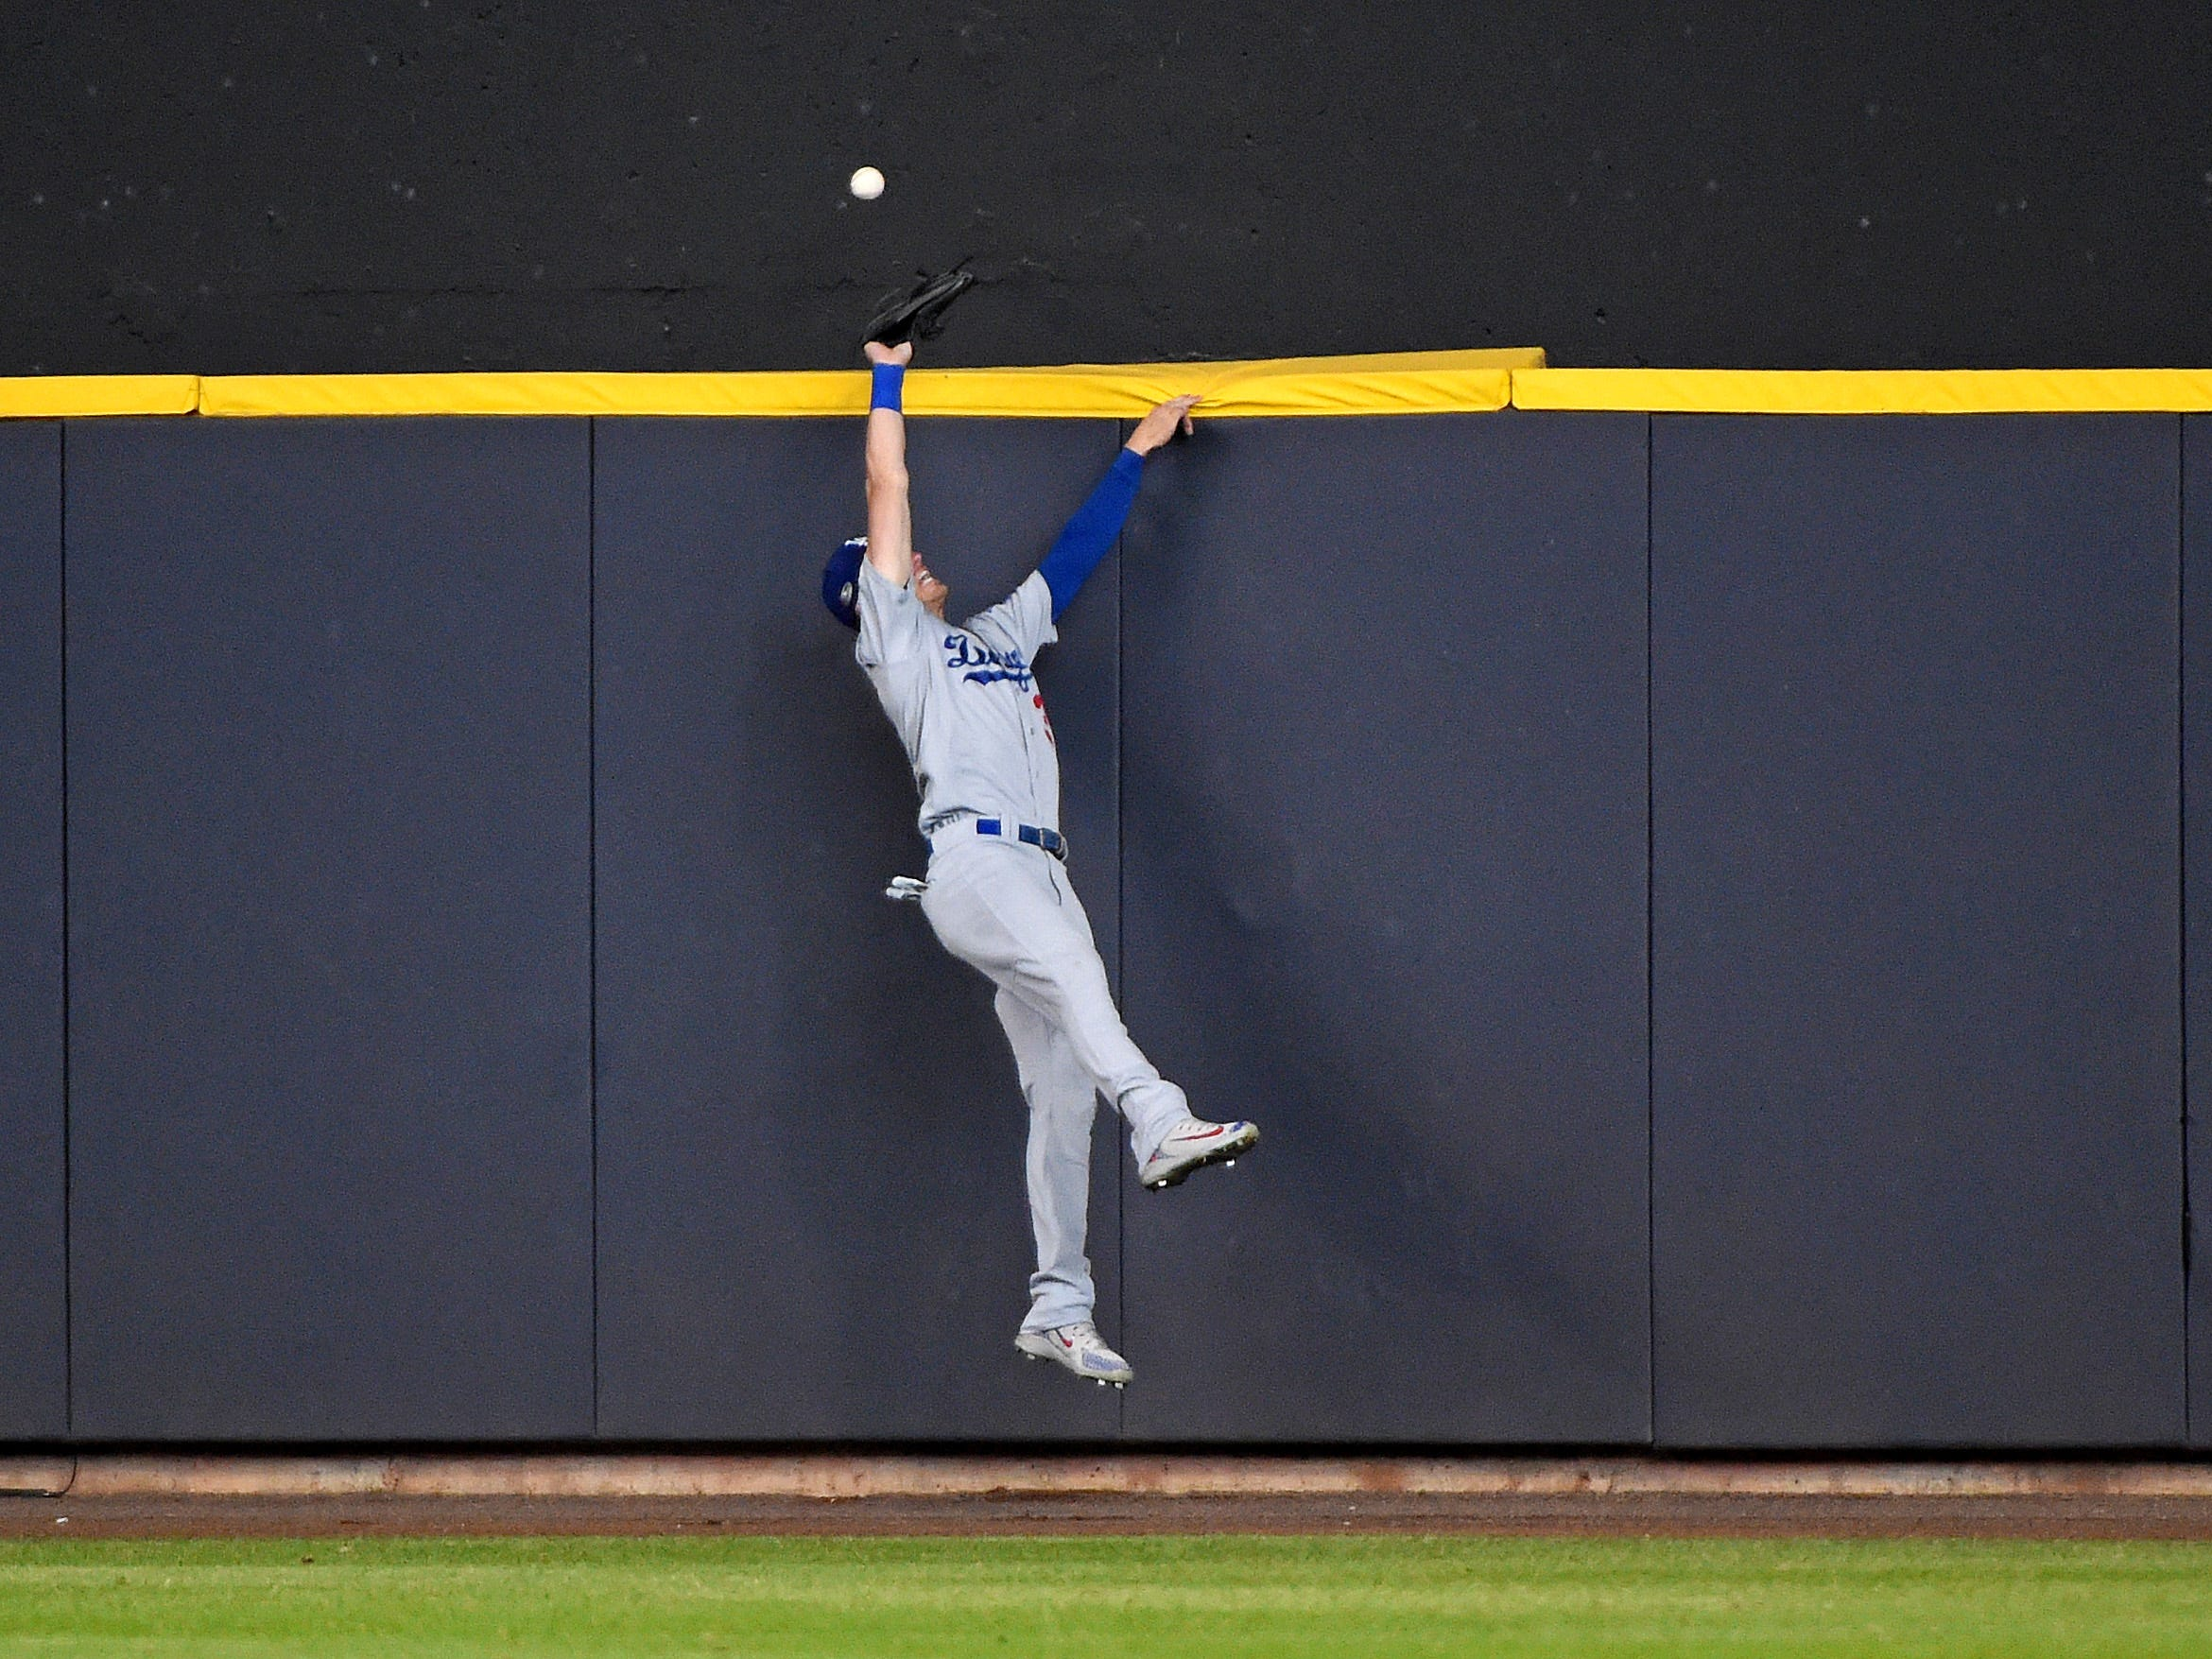 NLCS Game 2: A home run bu Orlando Arcia is just out of the reach of Dodgers center fielder Cody Bellinger in the fifth inning.